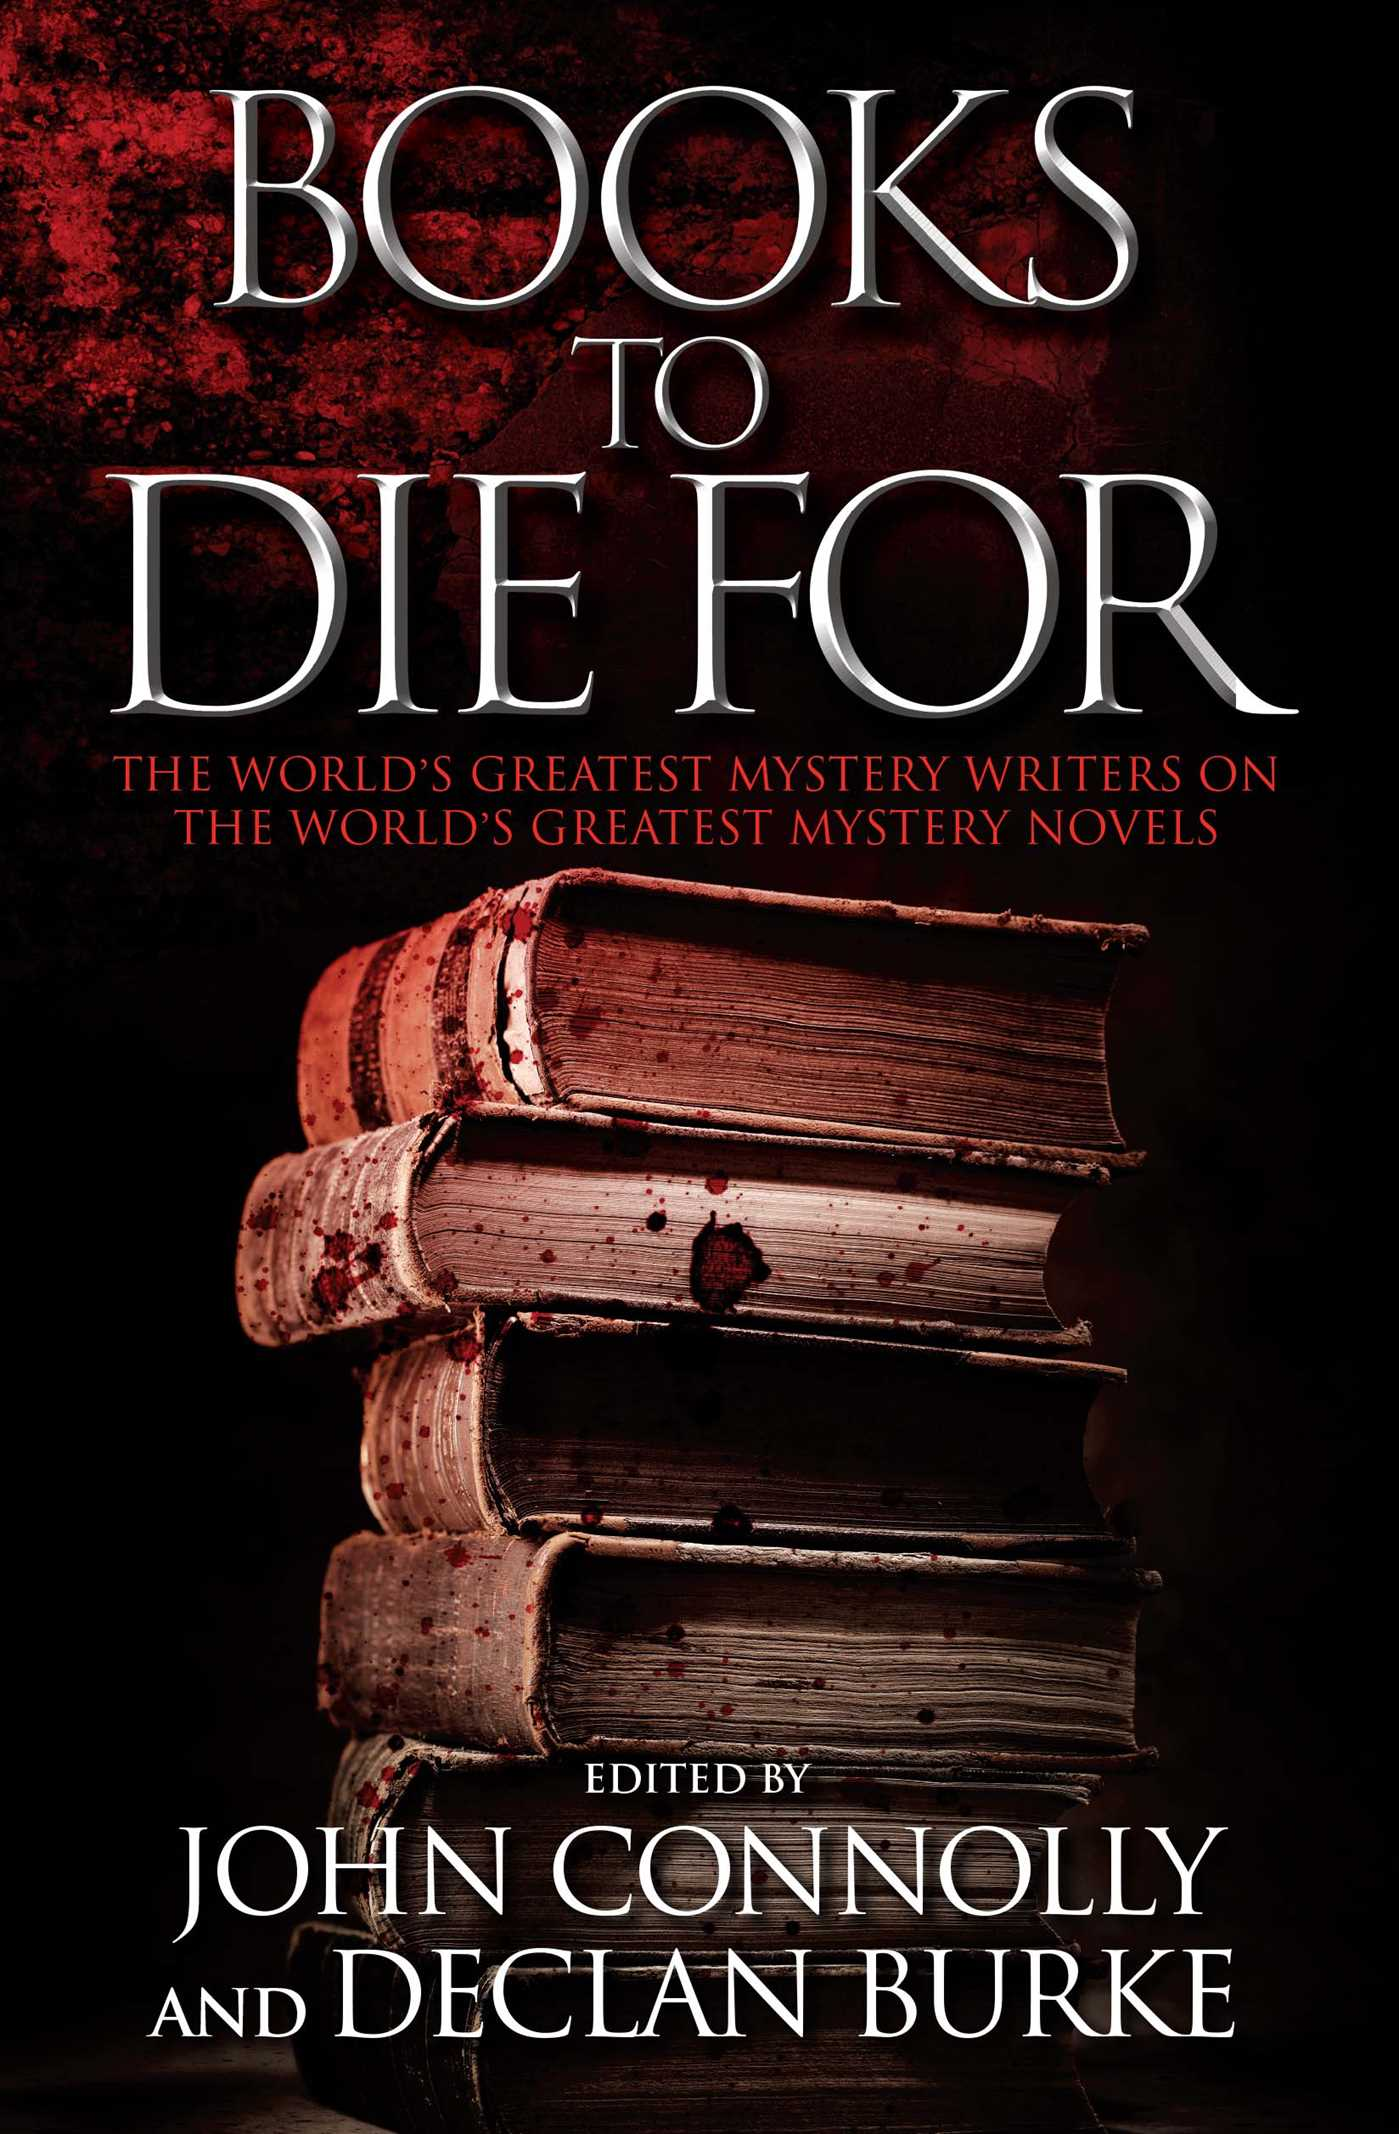 Books-to-die-for-9781451696585_hr